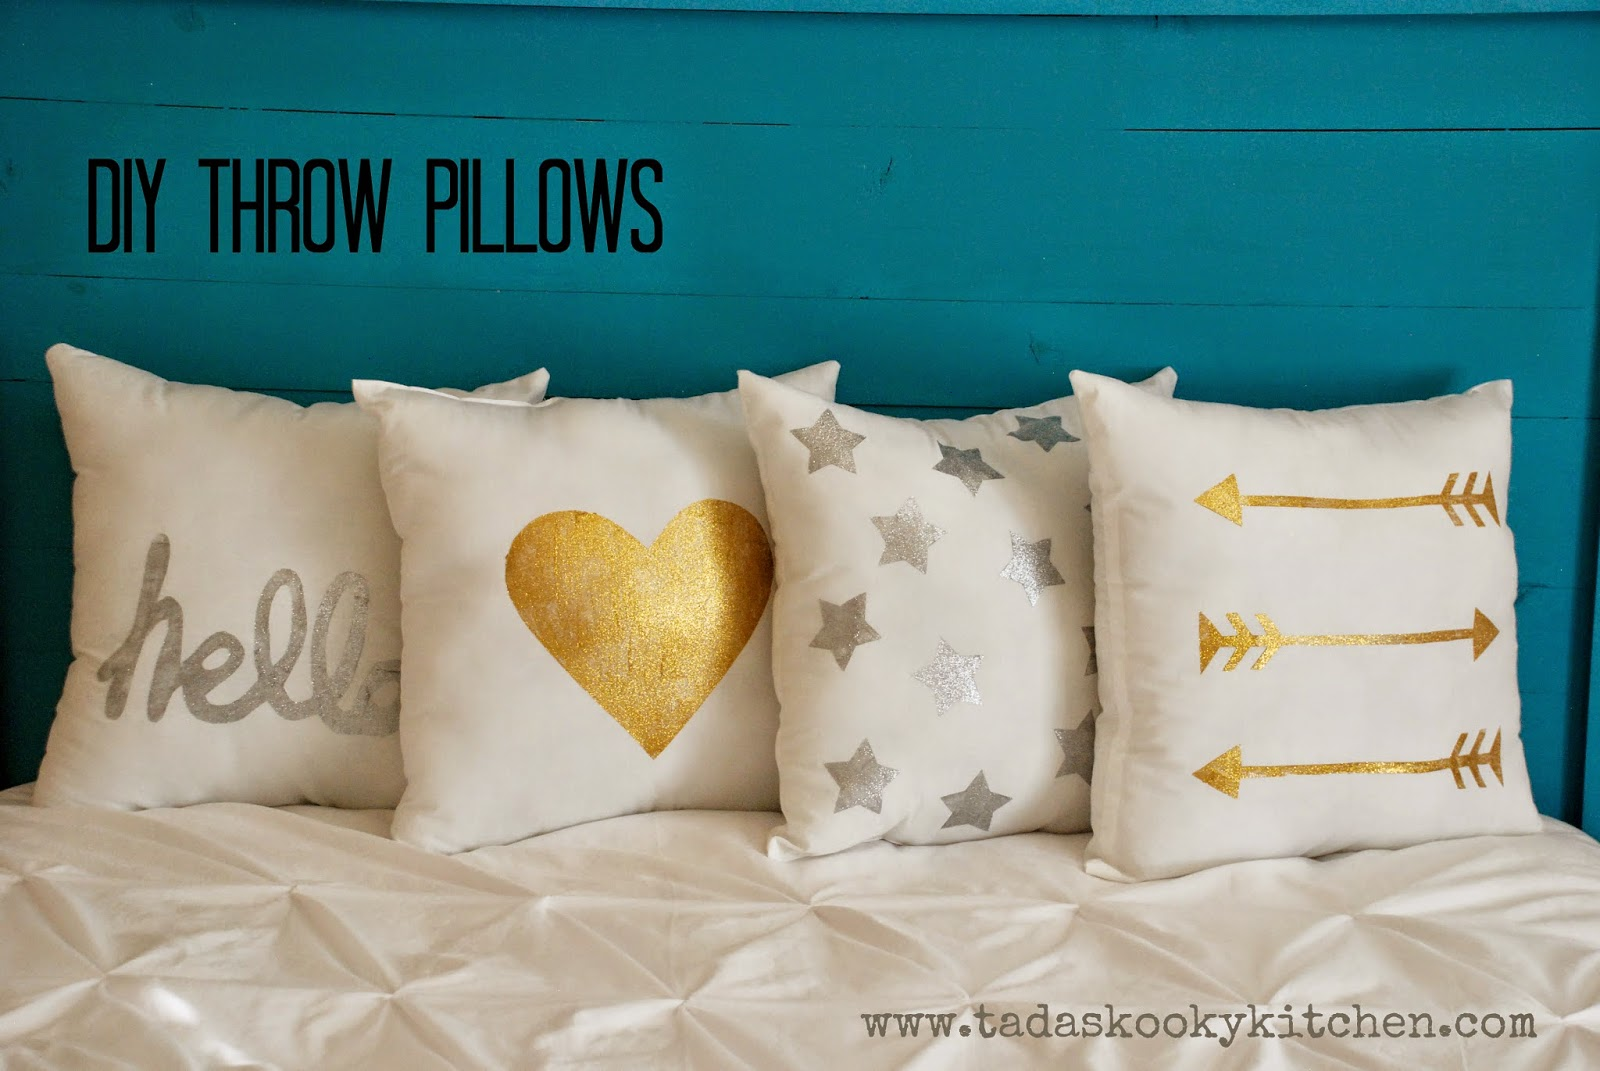 Diy Throw Pillow Instructions : Tada s Kooky Kitchen: DIY Throw Pillows